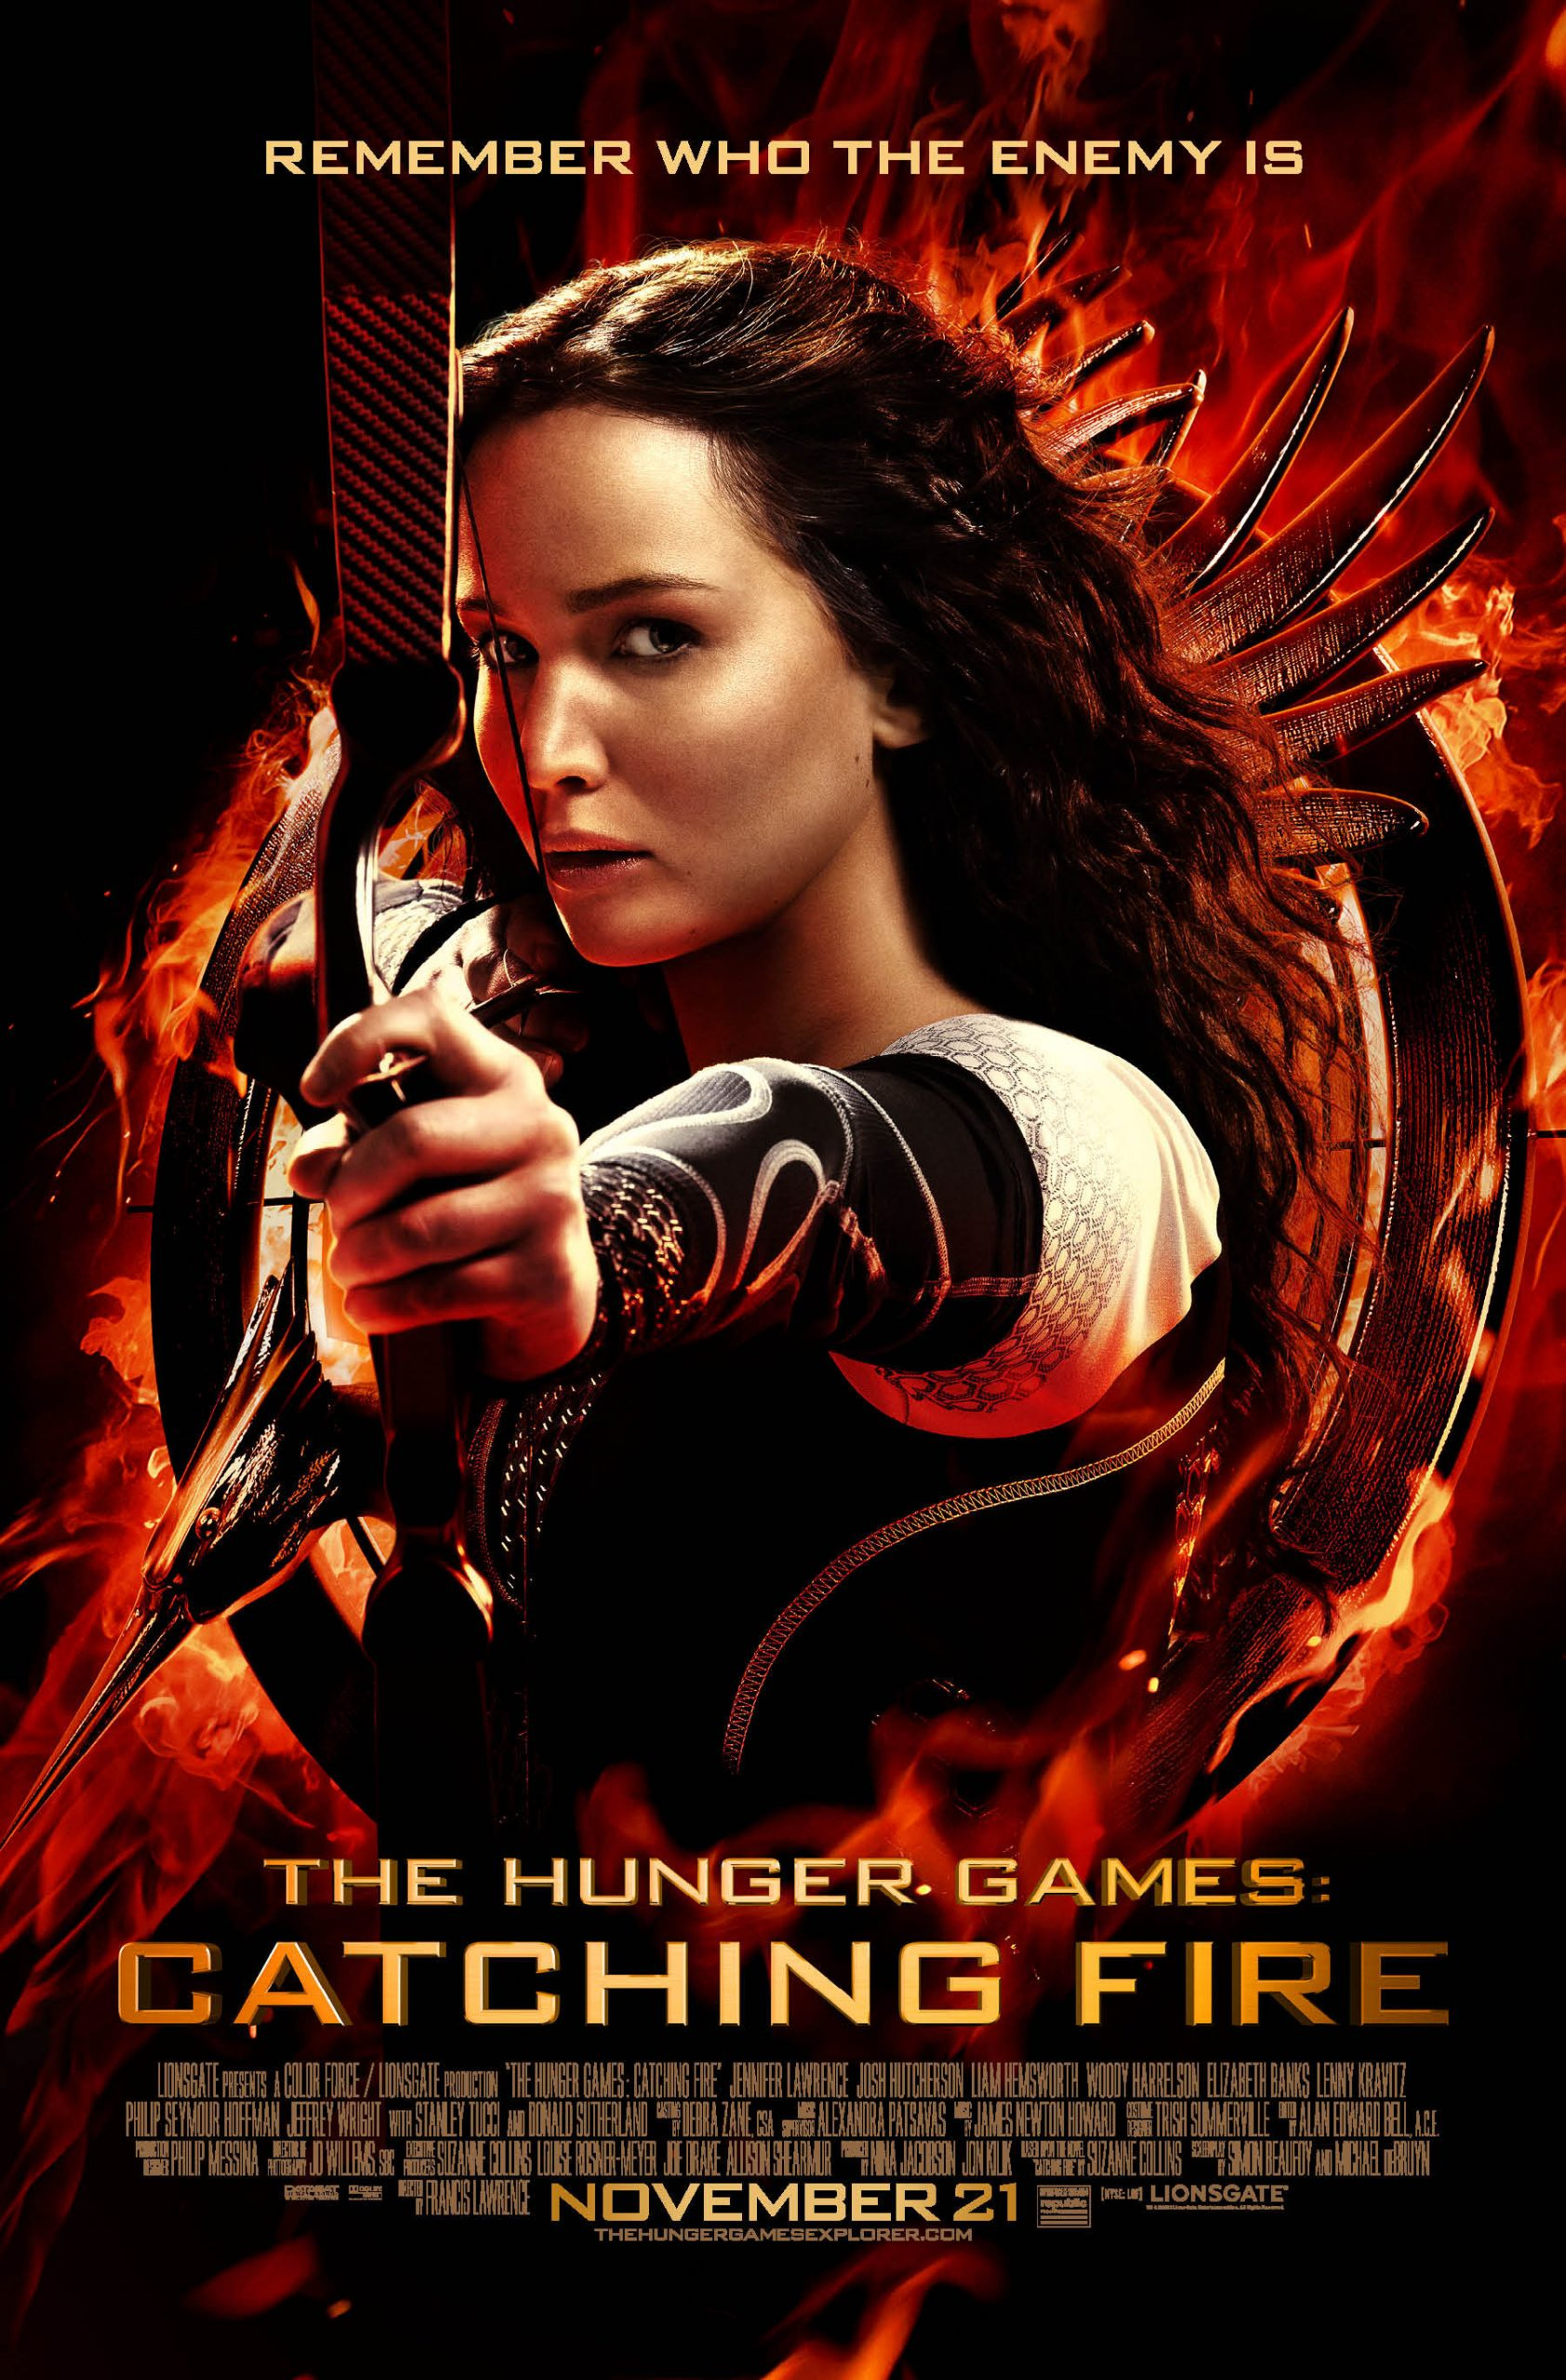 Katniss Everdeen can open Hollywood's Eyes!